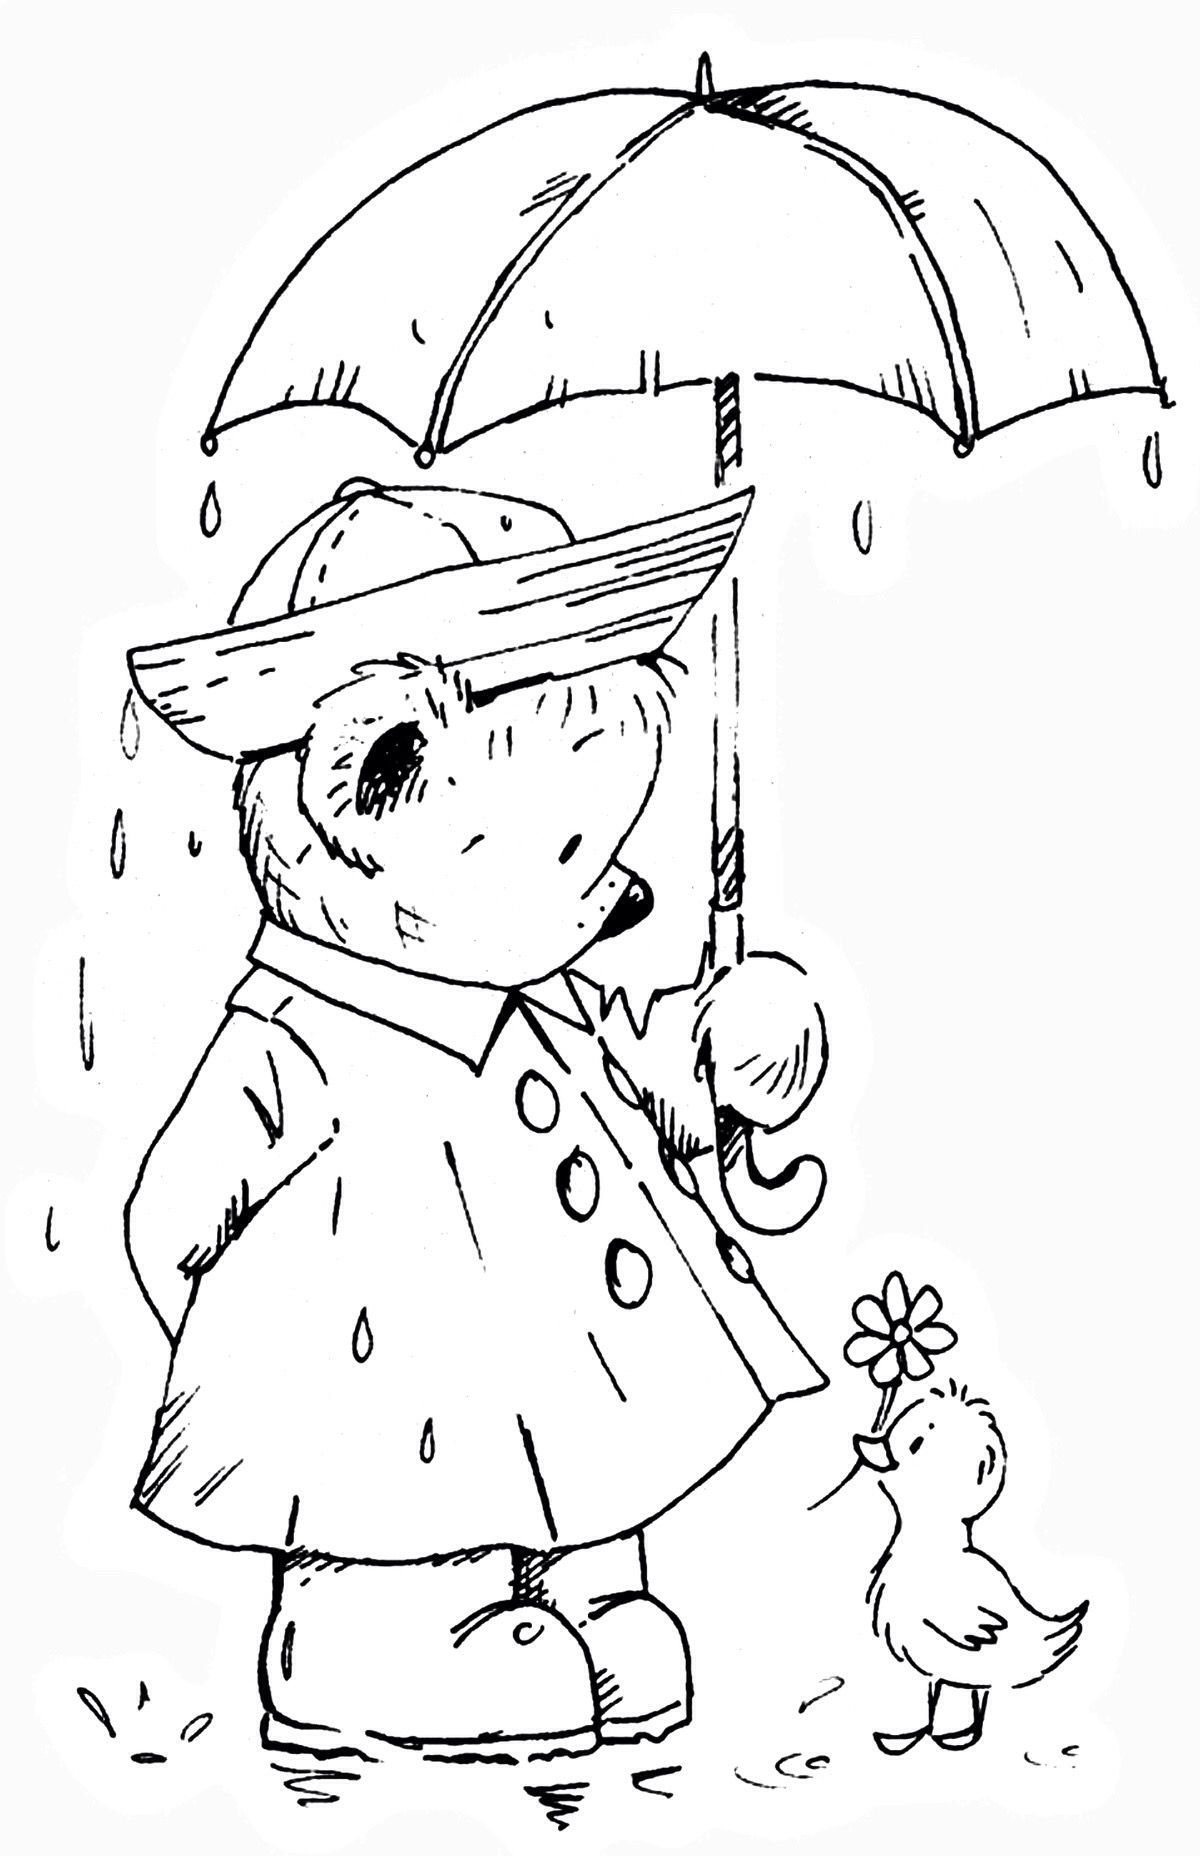 April Showers Bring May Flowers Coloring Page Coloring Pages Bear Coloring Pages Cool Coloring Pages